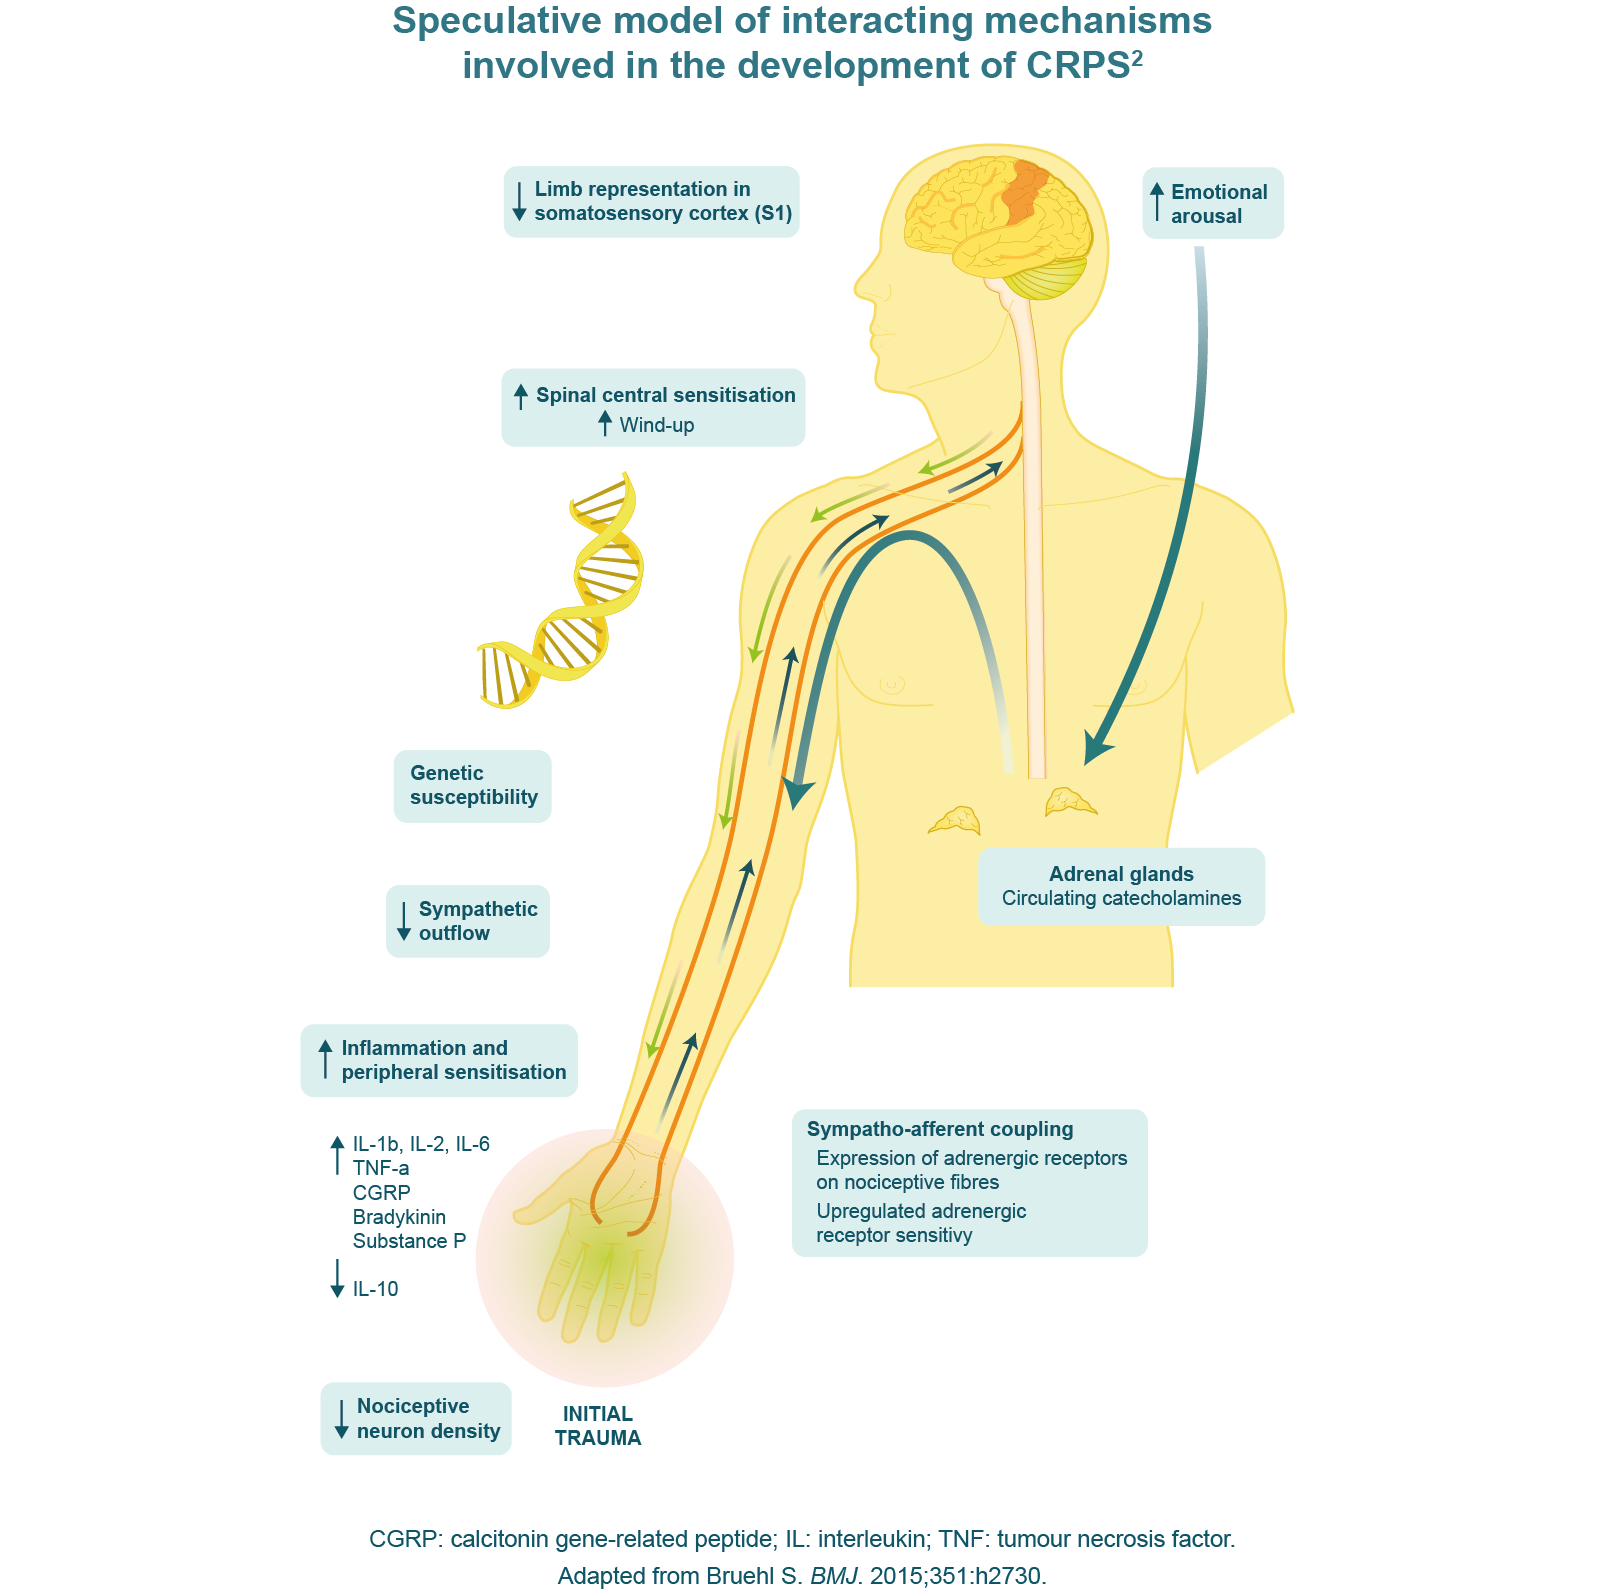 Speculative model of interactive mechanisms involved in the development of CRPS